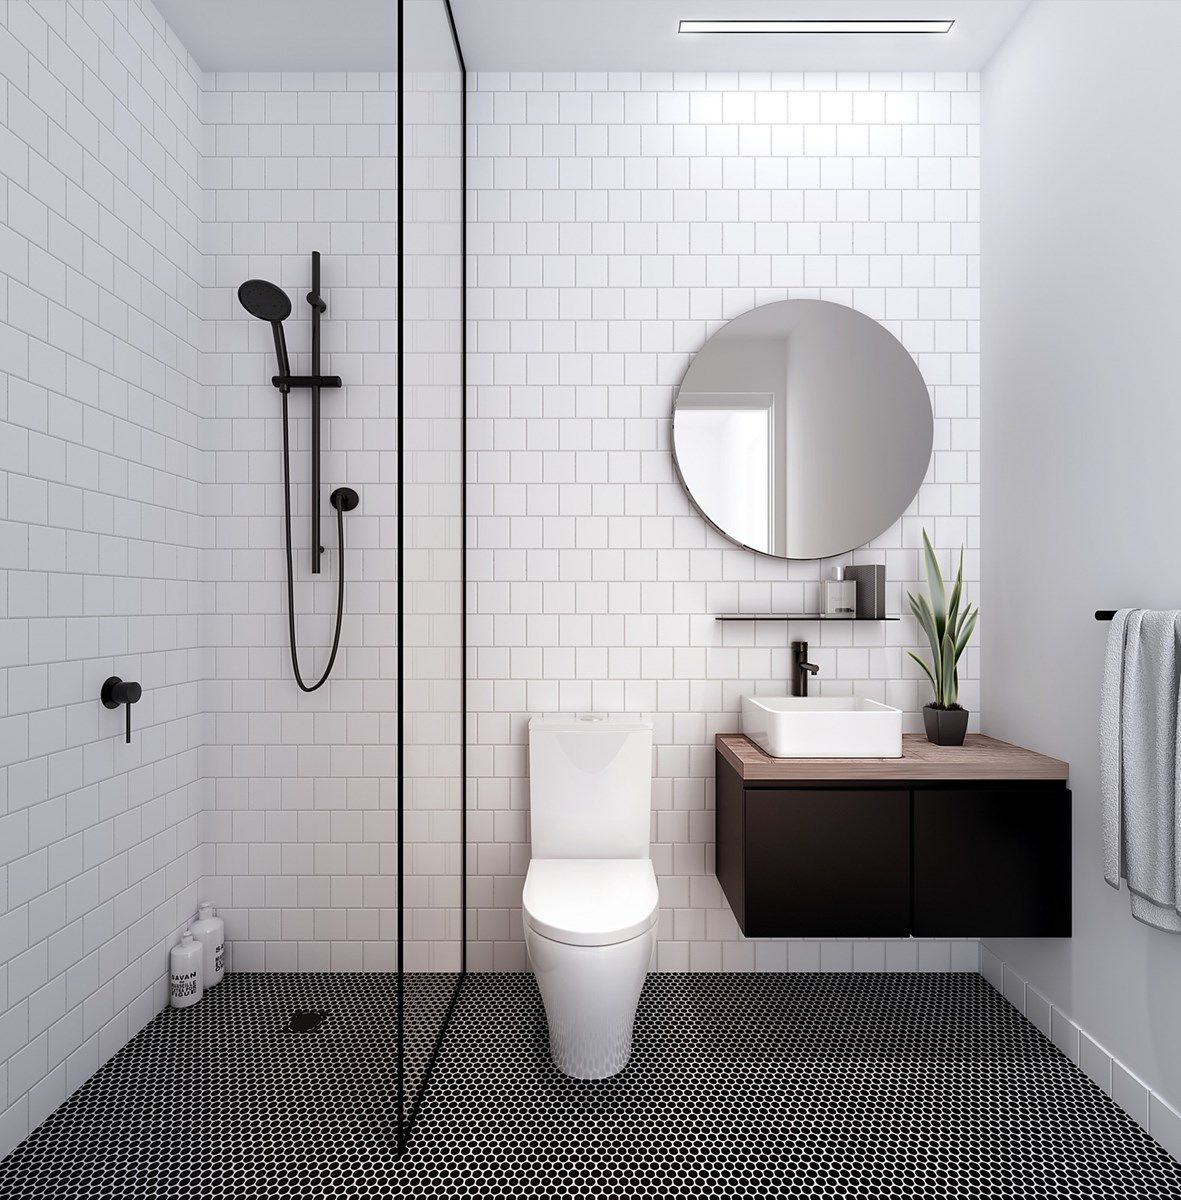 white tile walls | minimalist bathroom | divider between toilet and ...